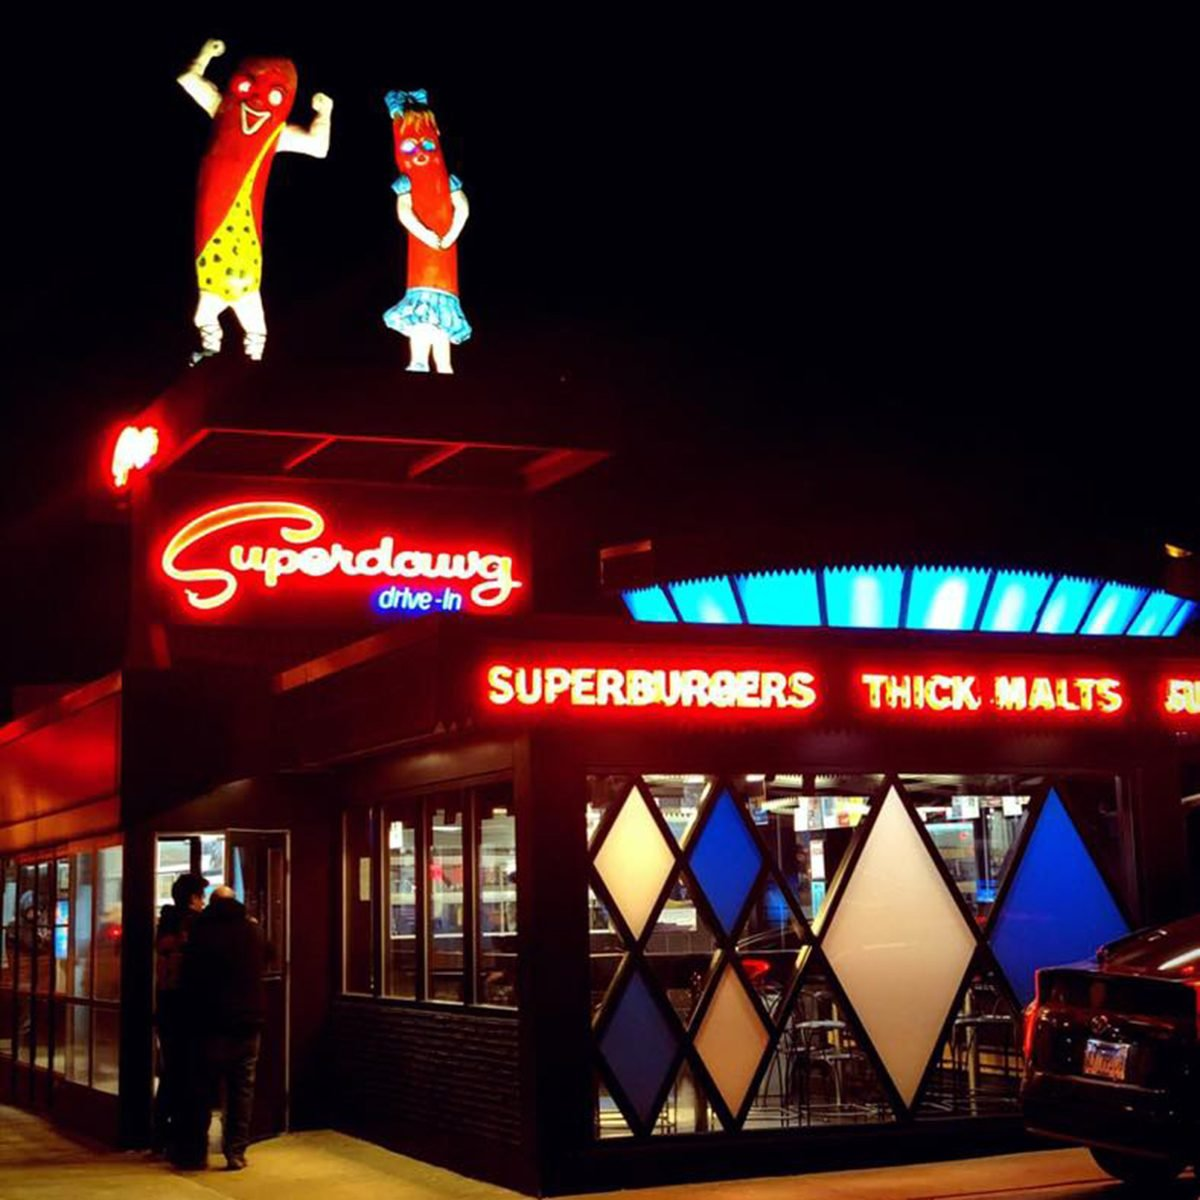 SUPERDAWG DRIVE-IN